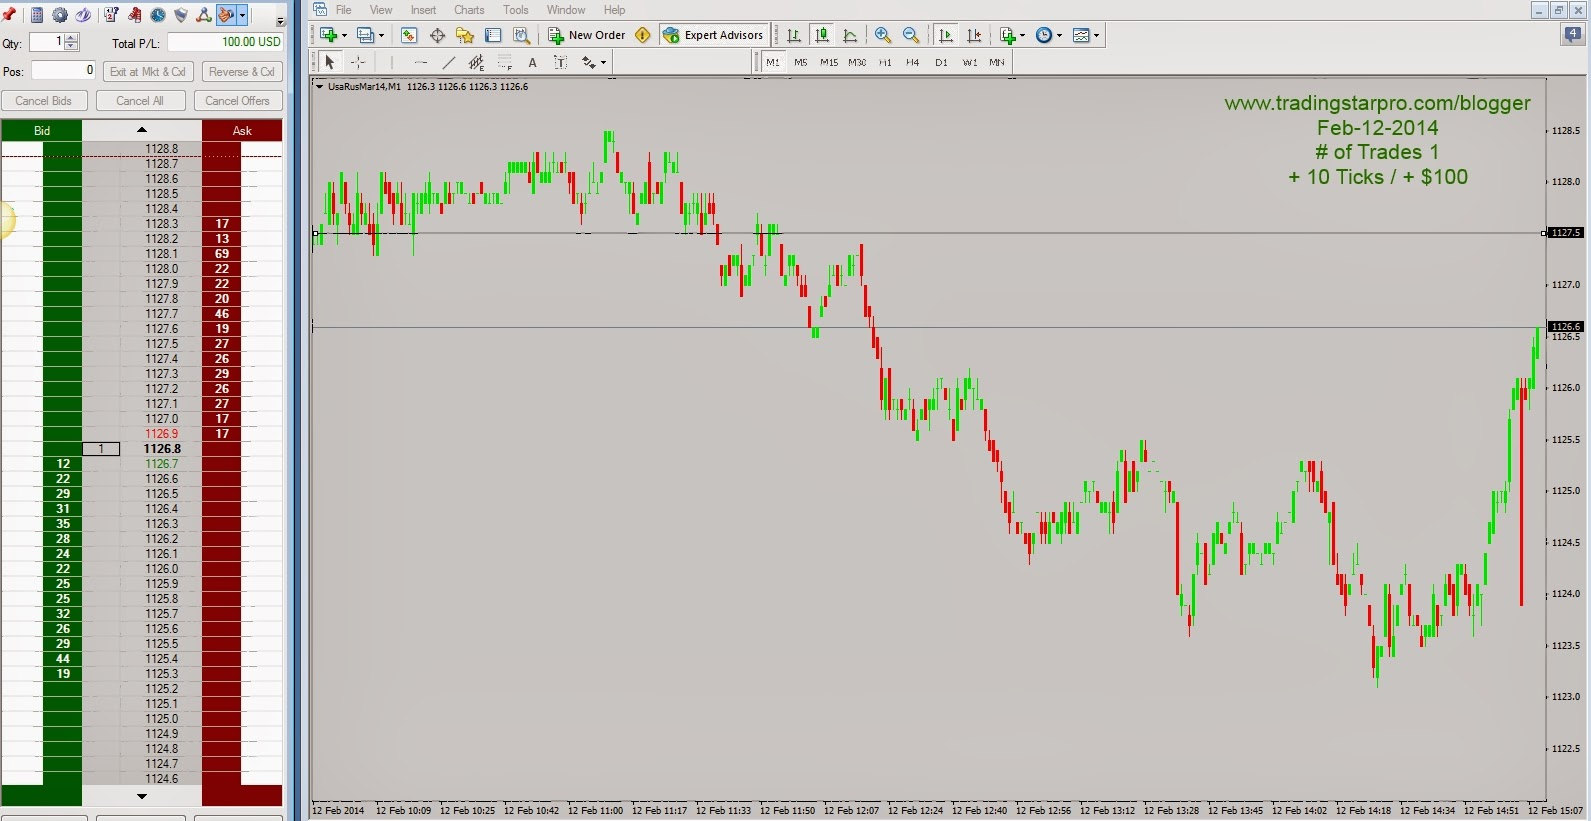 Trading Room Performance, Wednesday, 02/12/2014